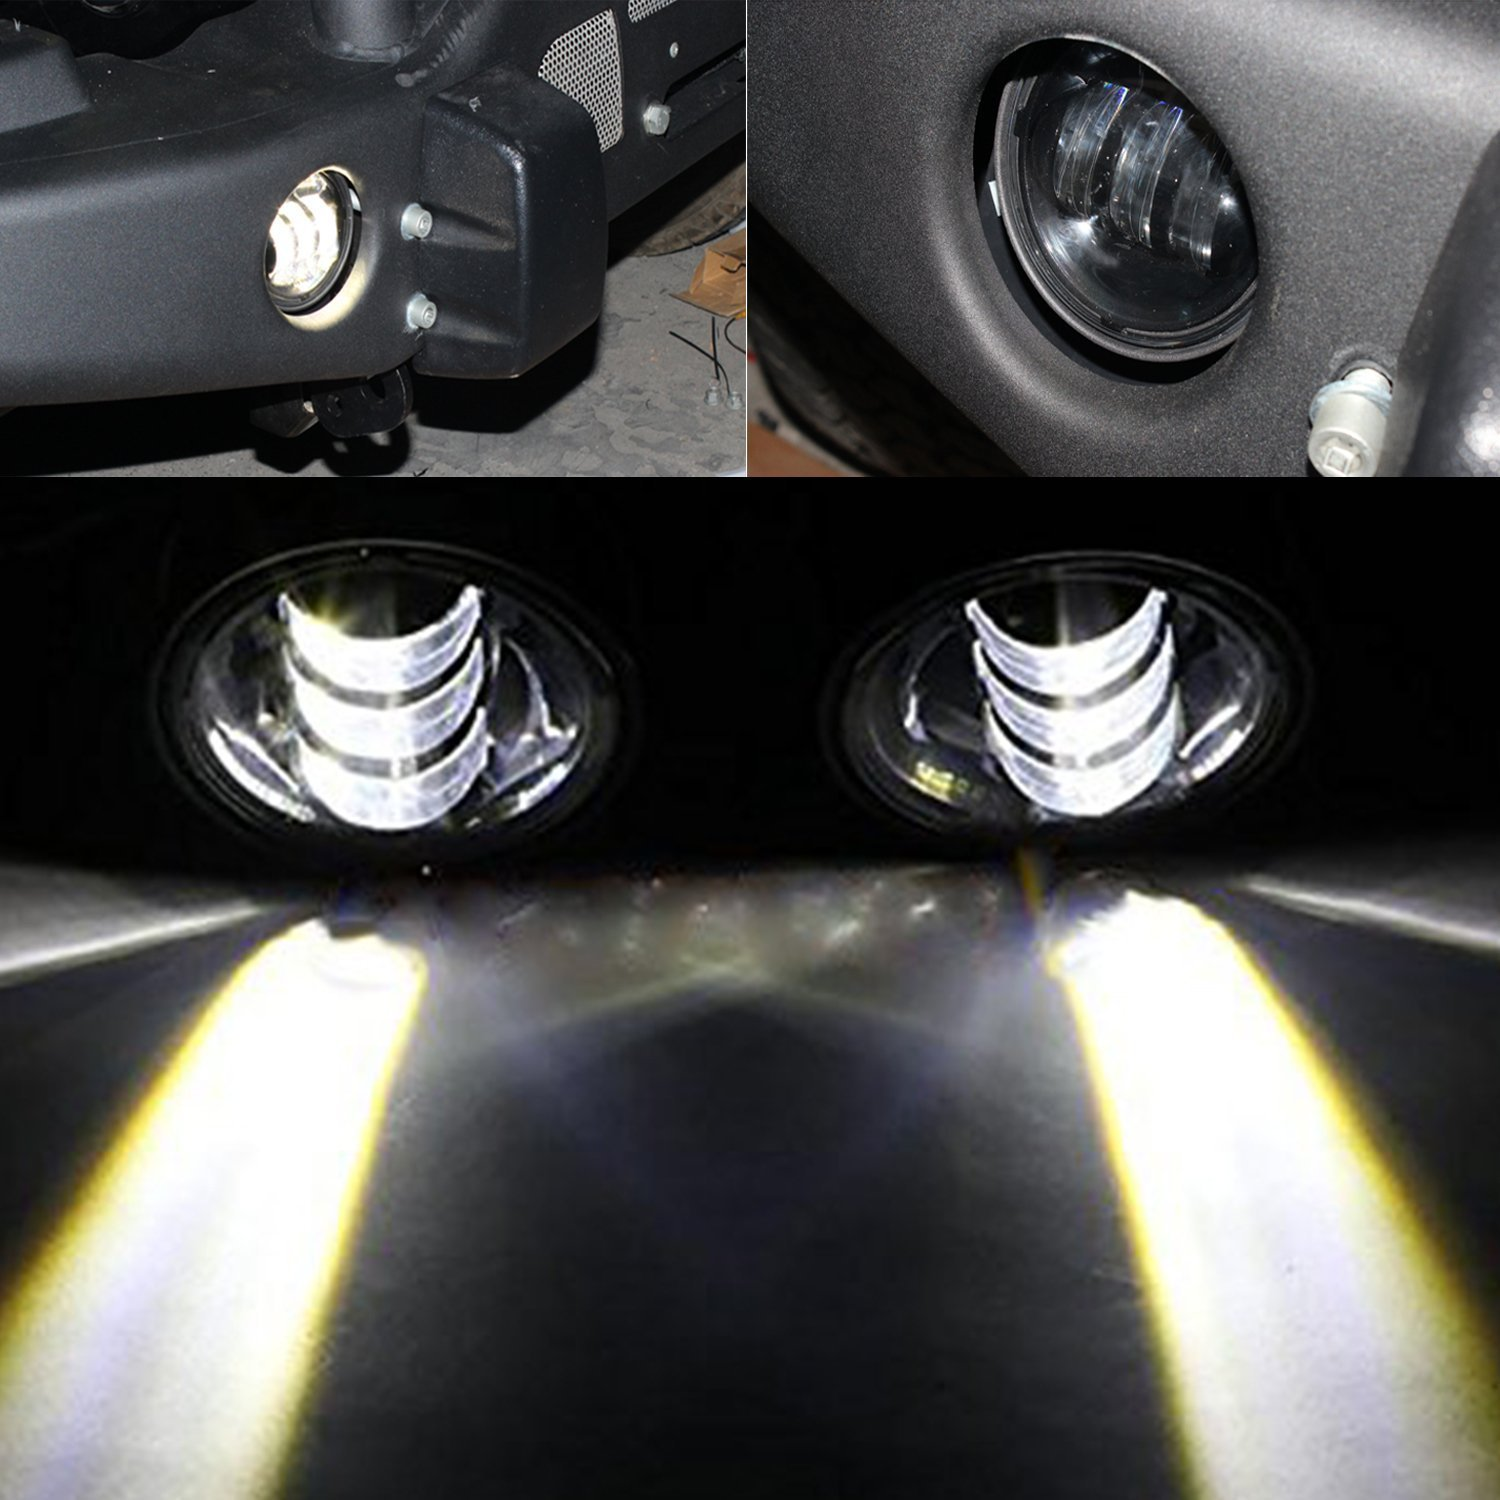 bhd led m fog sdn brother bulbs post laju lamp ycl en light outlet factory s toyota